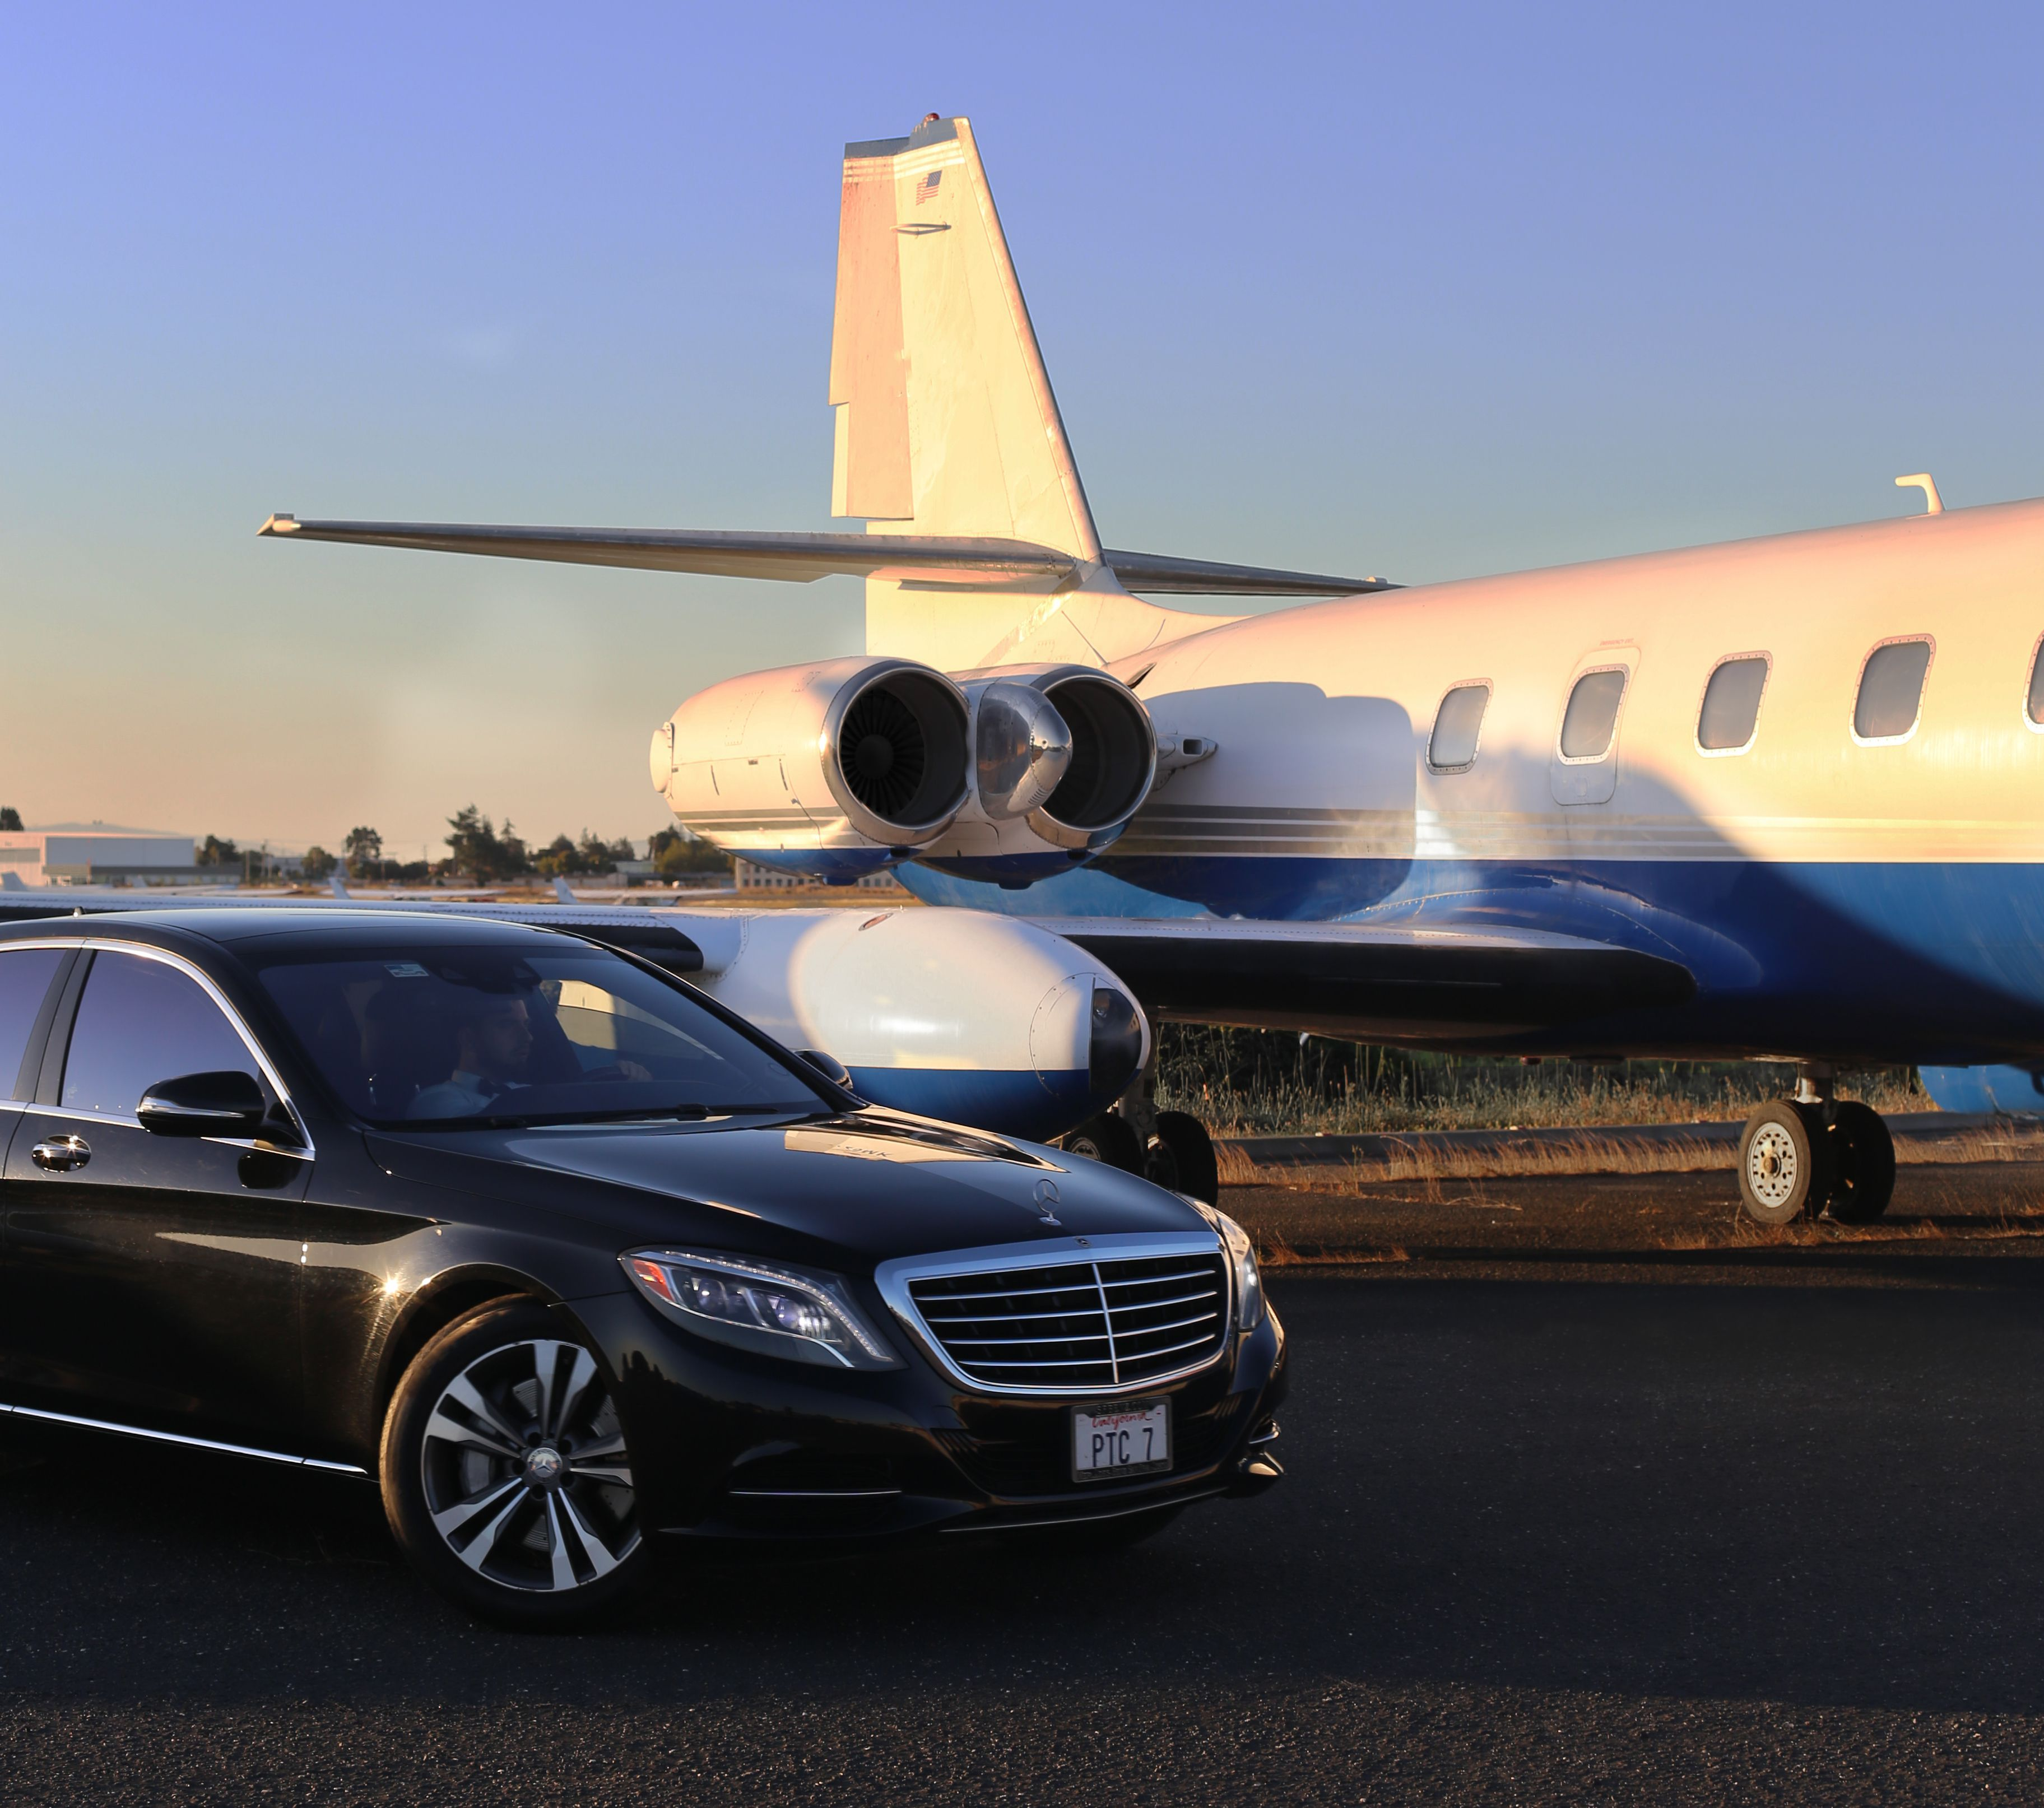 Ptc San Francisco Number 1 Service Point To Point Hourly Airport Transportation And Other Services Our Services Are San Francisco Airport Limo Lincoln Town Car